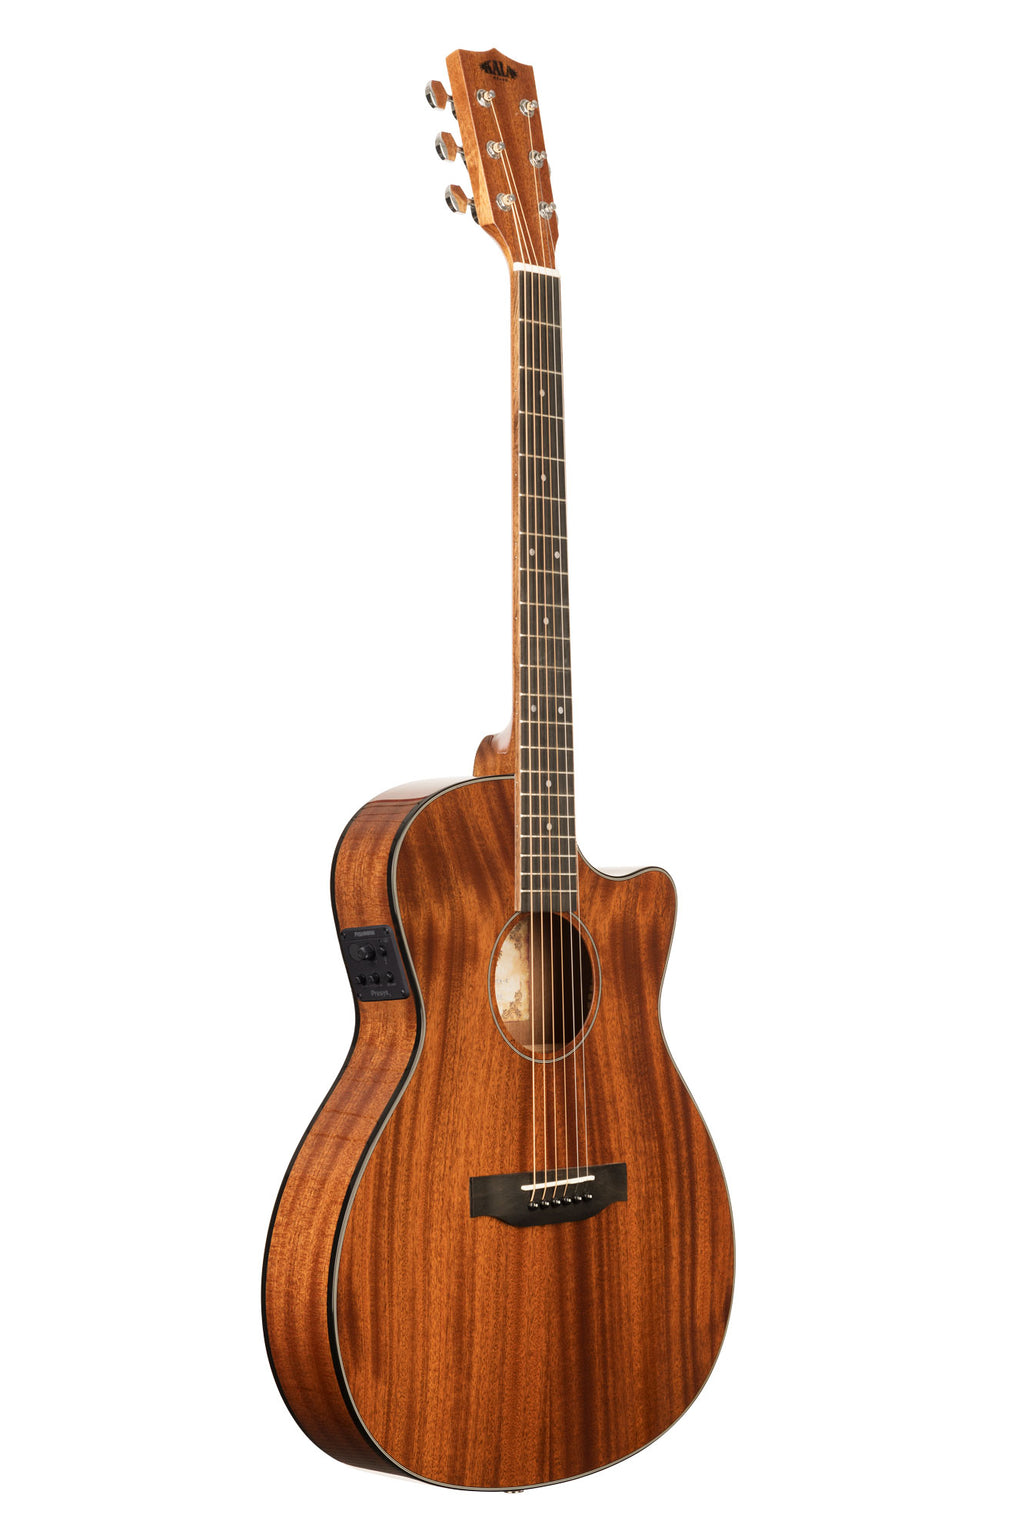 BLEM - Solid Mahogany Thinline Guitar